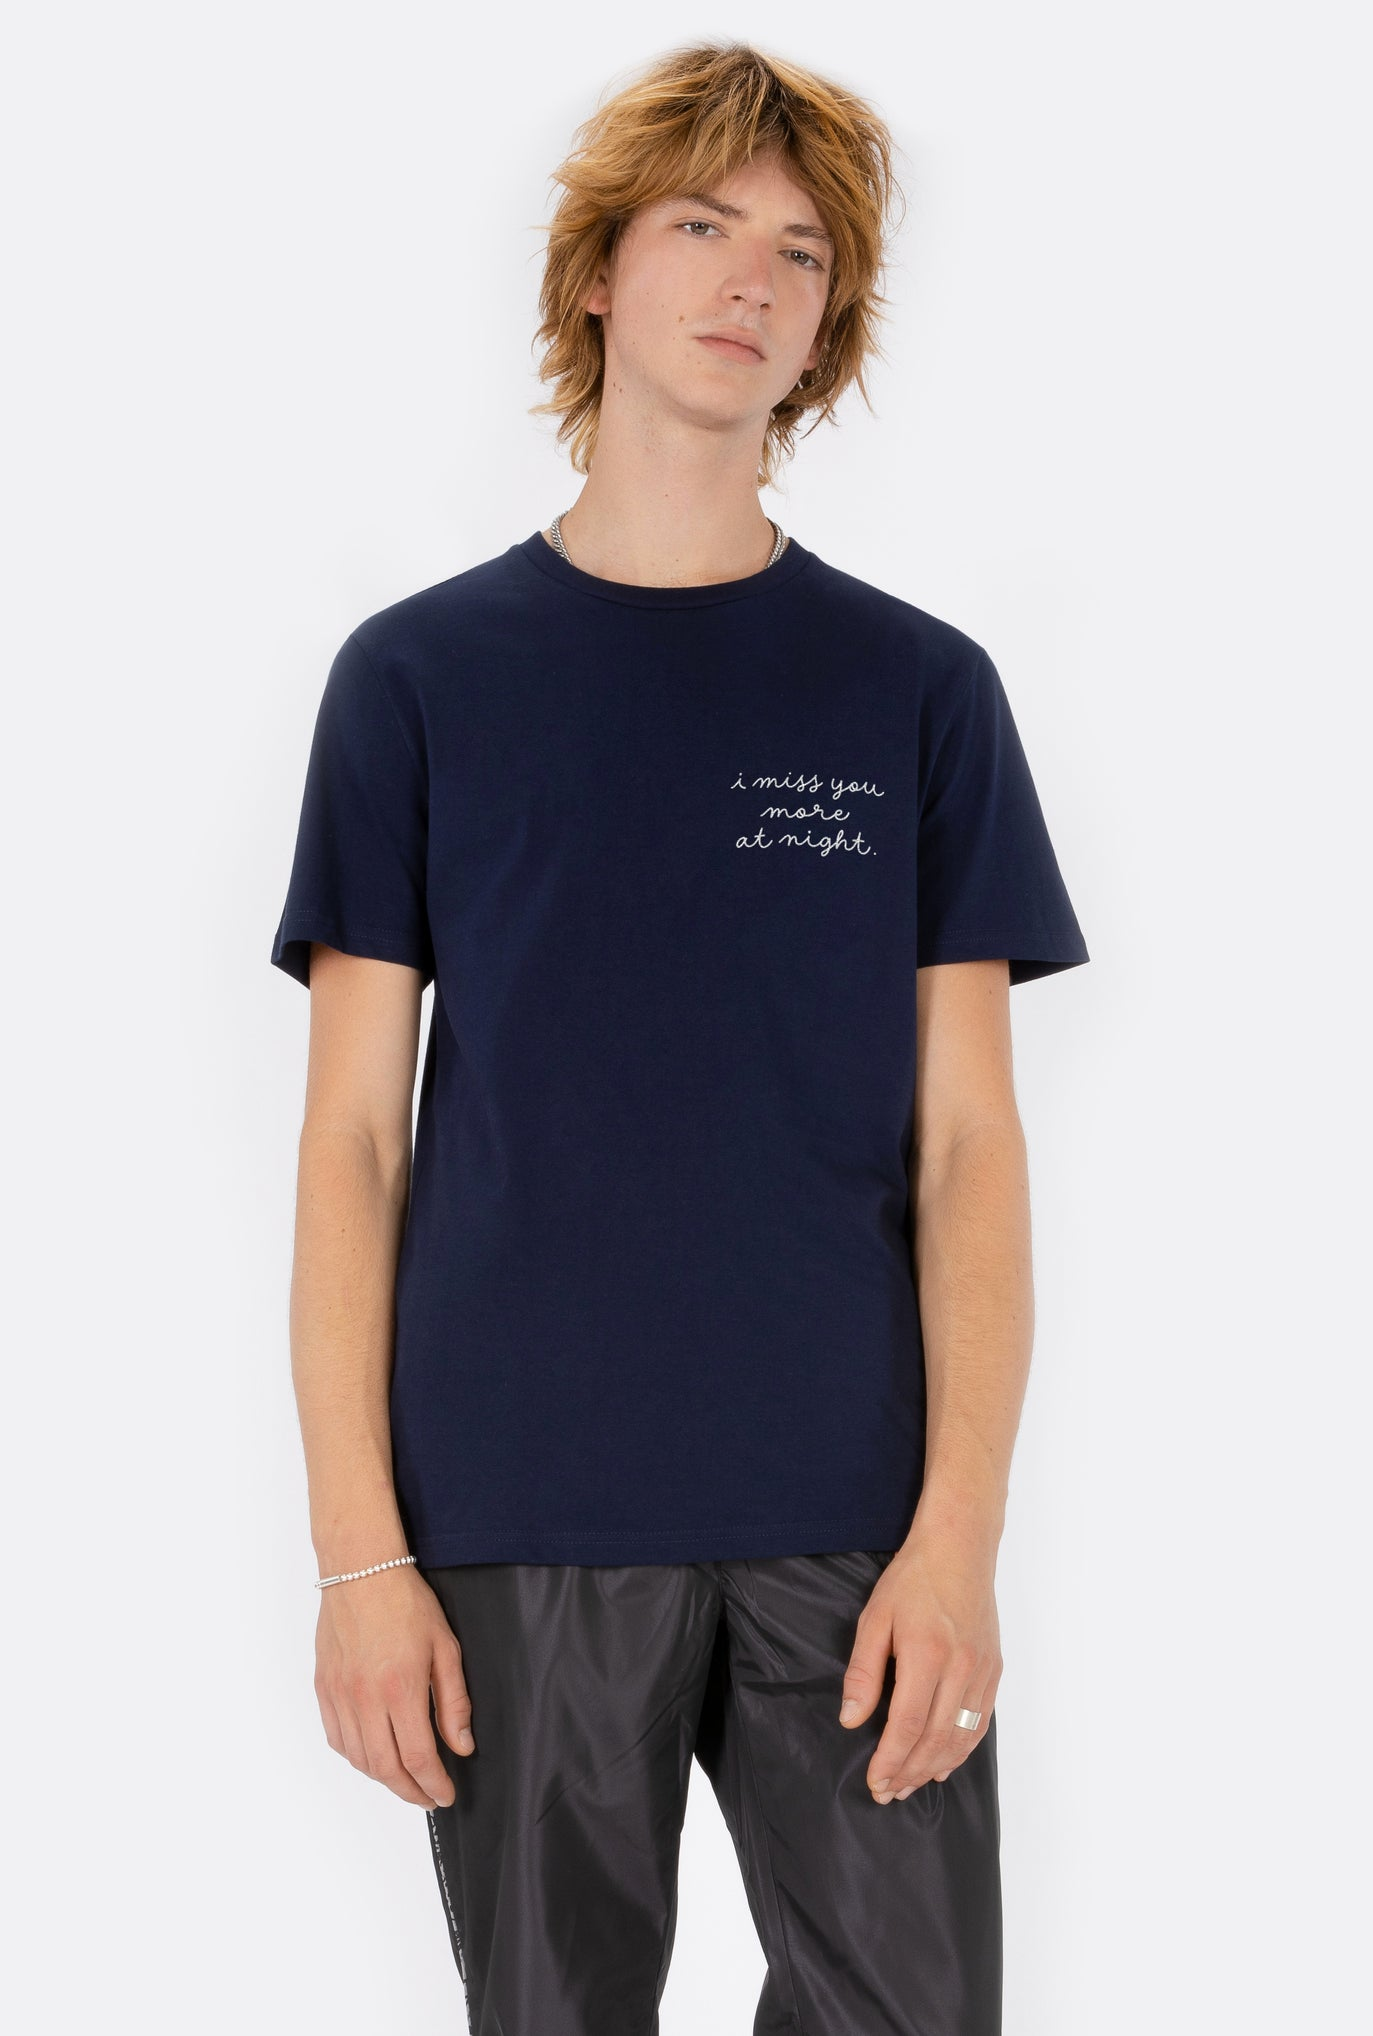 T-Shirt S/S Miss You More - Embroidered